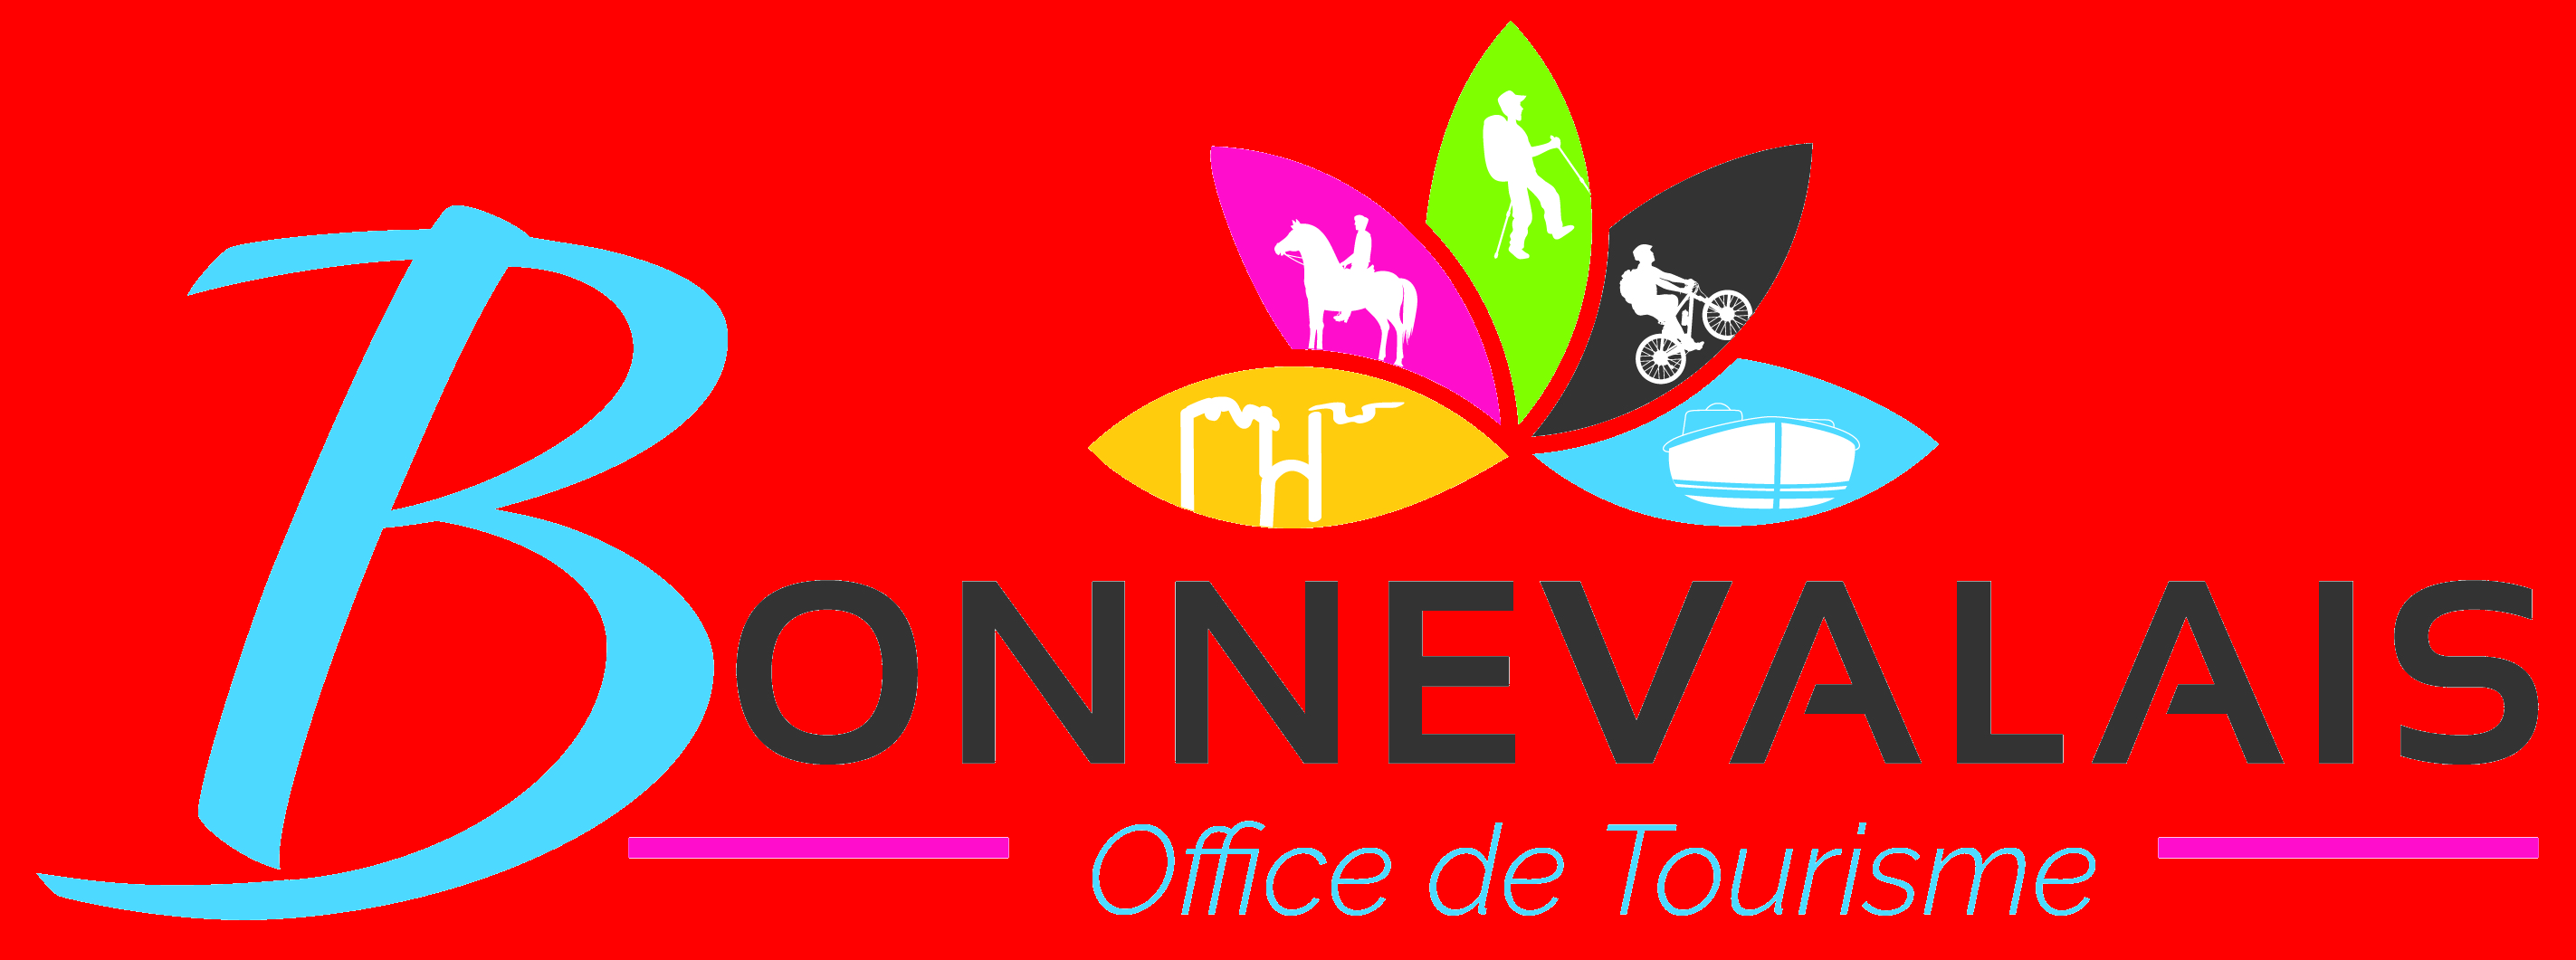 Office de Tourisme du Bonnevalais